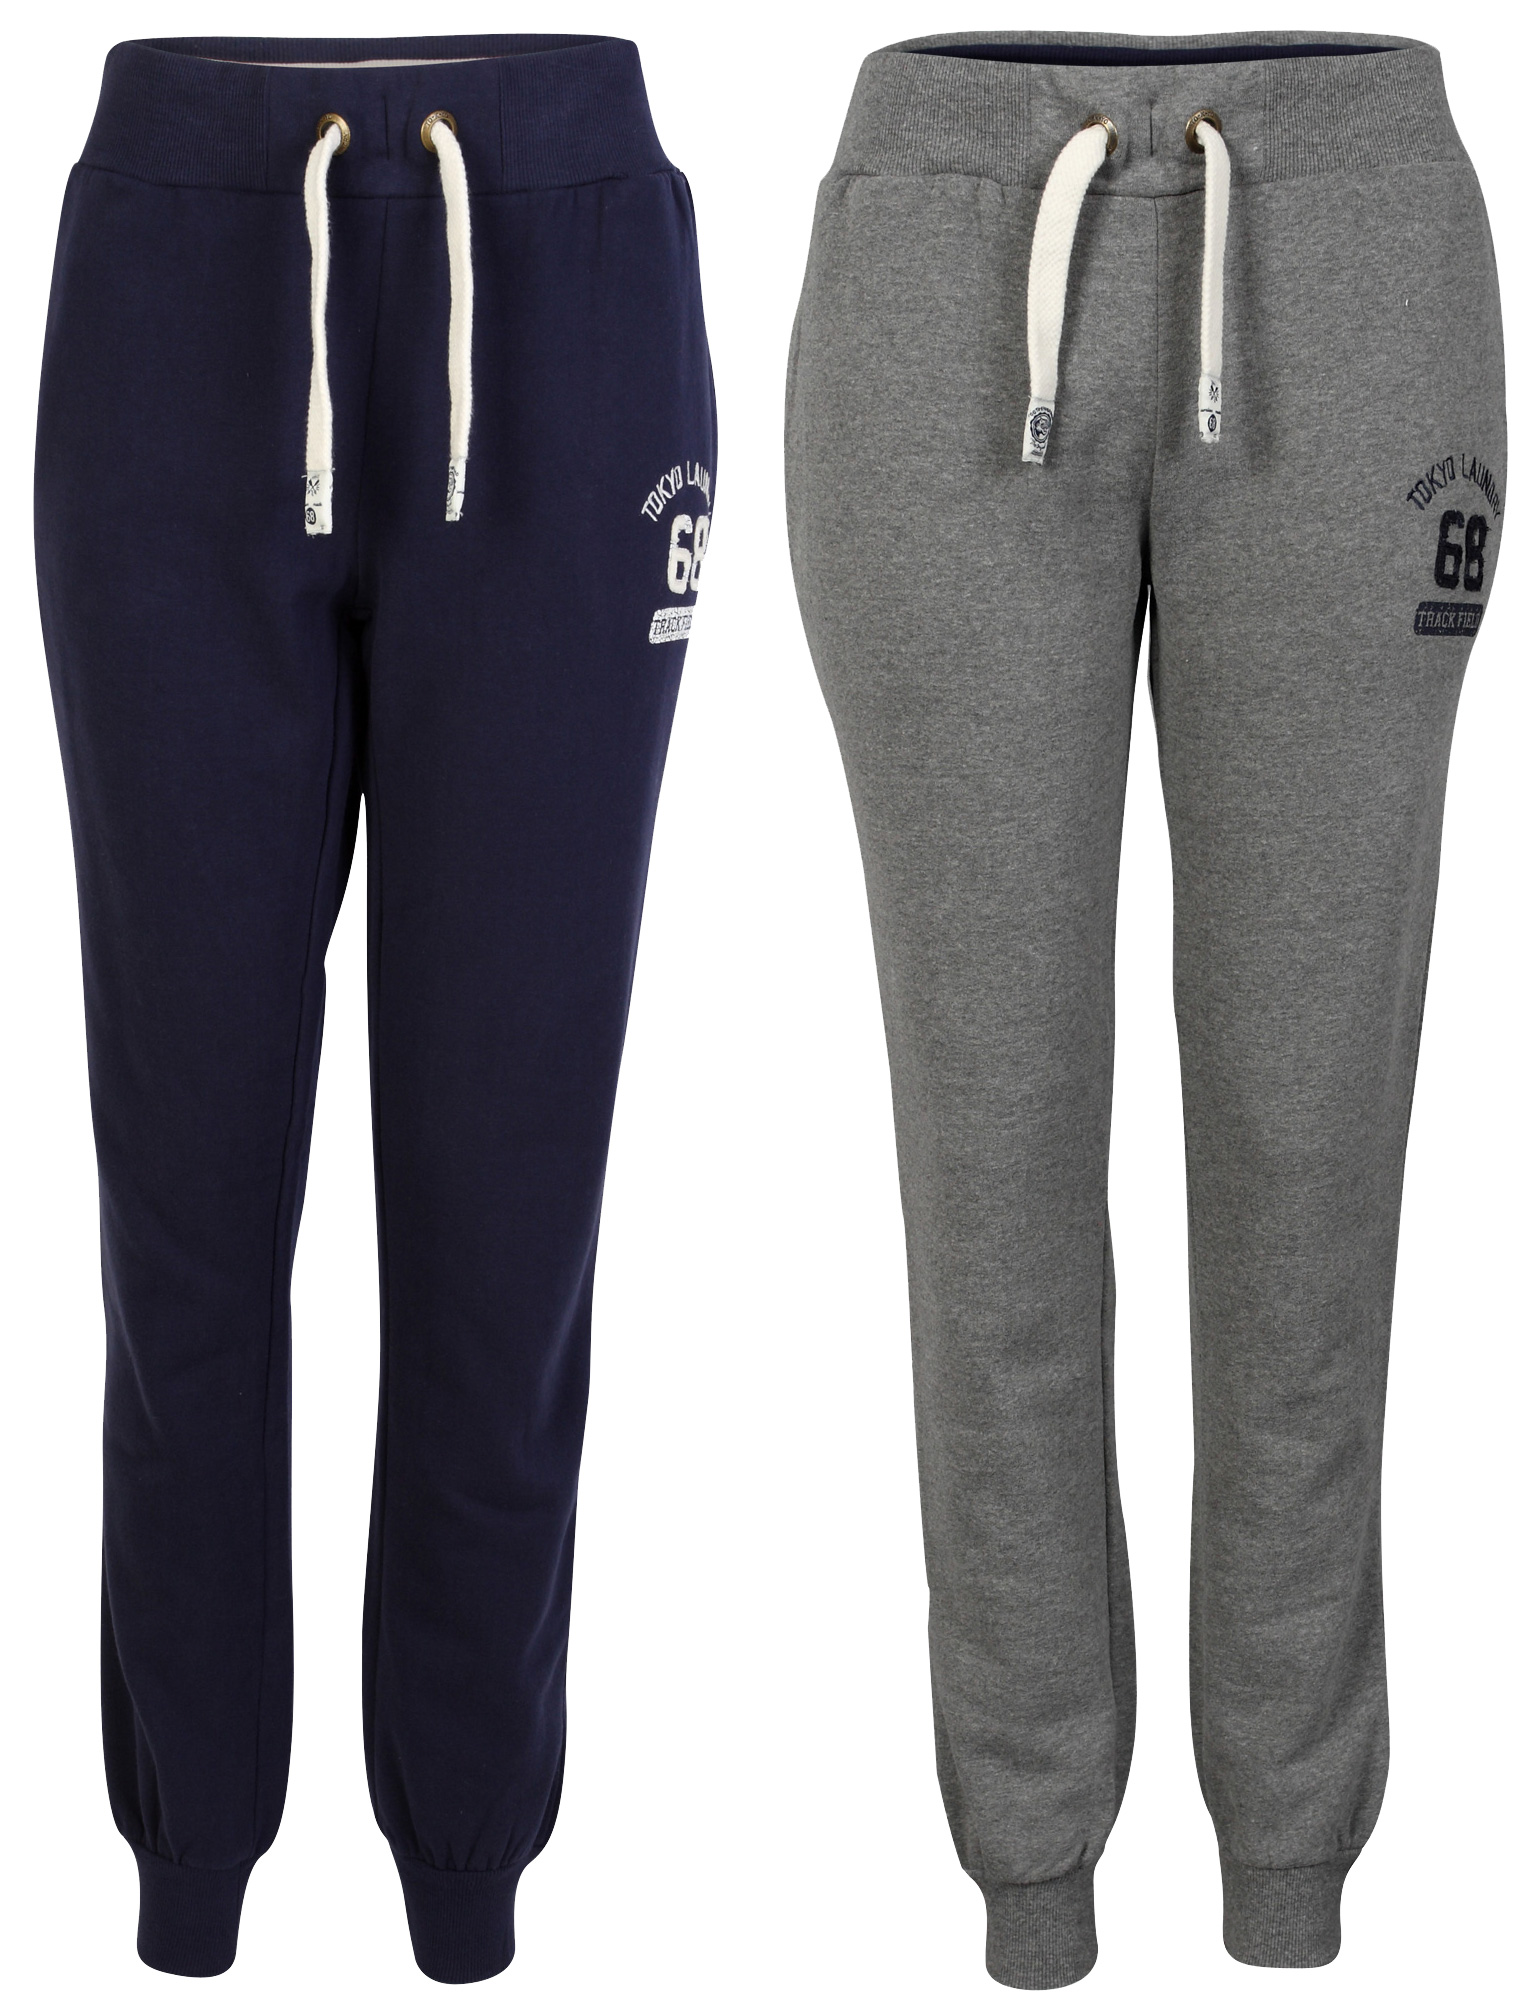 Find great deals on eBay for ladies joggers. Shop with confidence.